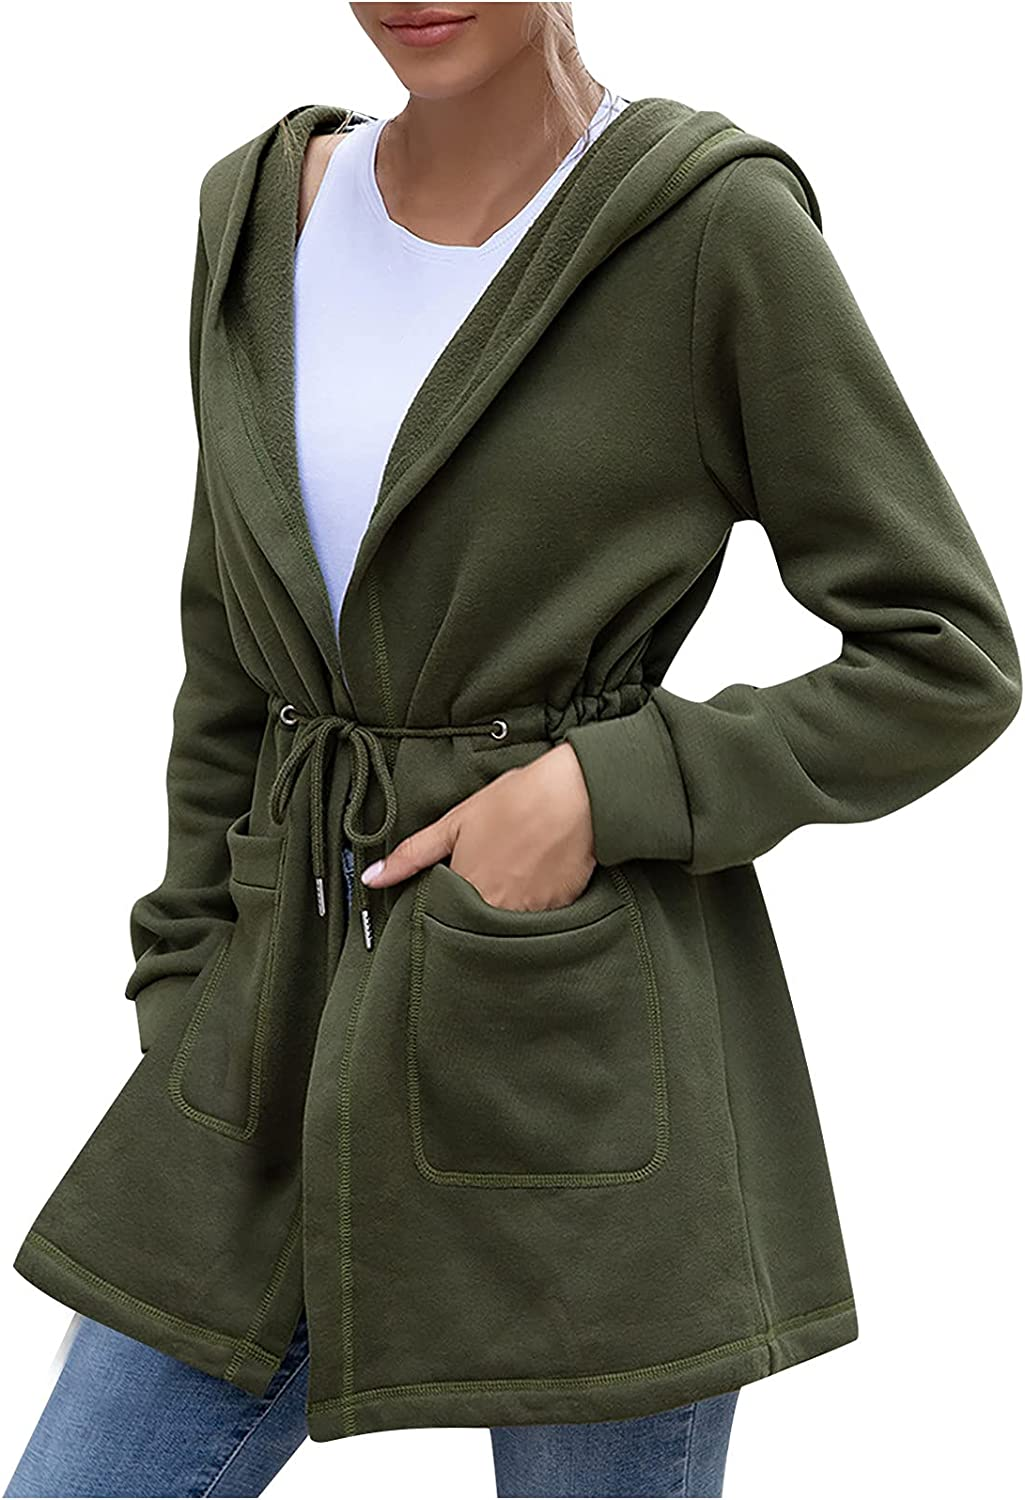 MEIbibibi Women Solid Fuzzy Outerwear Drawstring Waisted Slim Coat Casual Comfy Hooded Pockets Anoraks